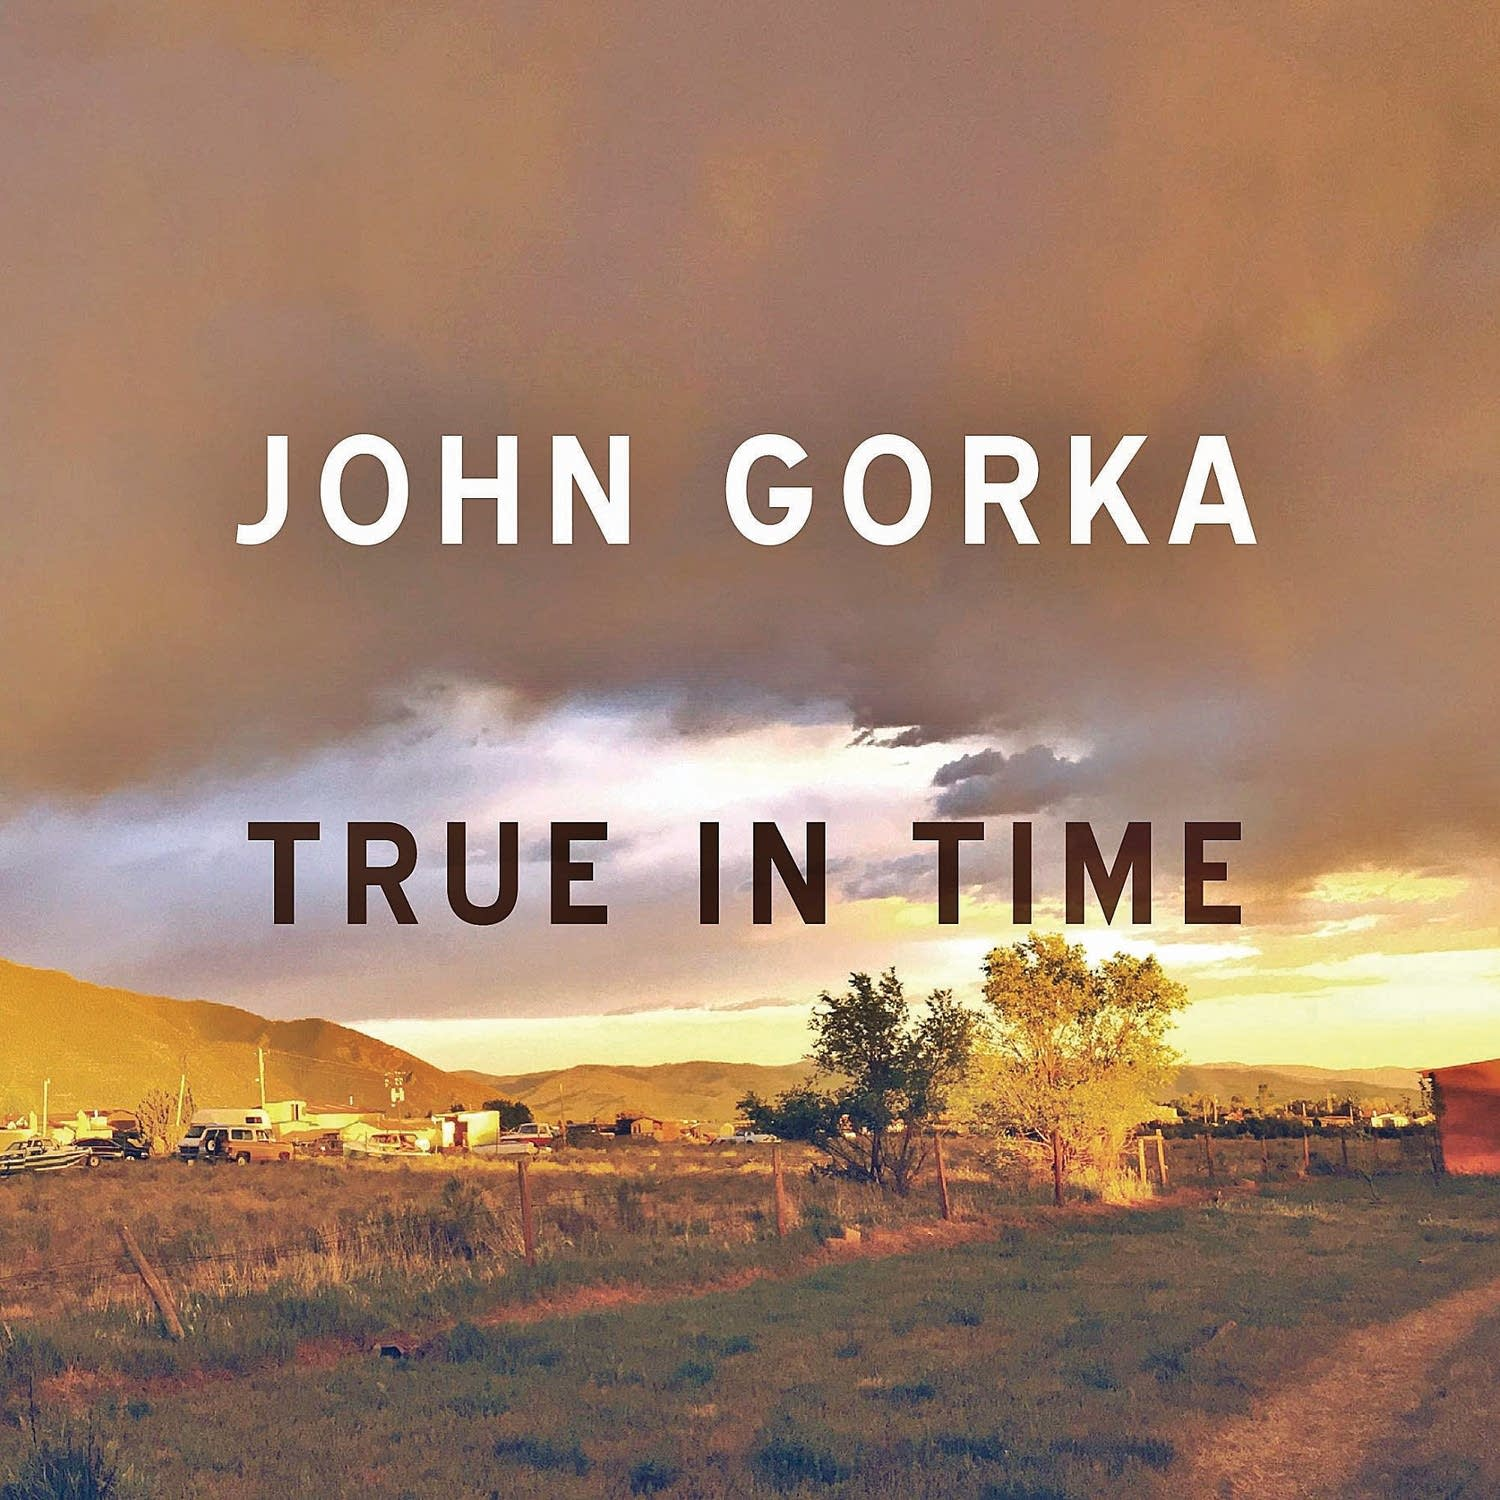 John Gorka, 'True In Time'